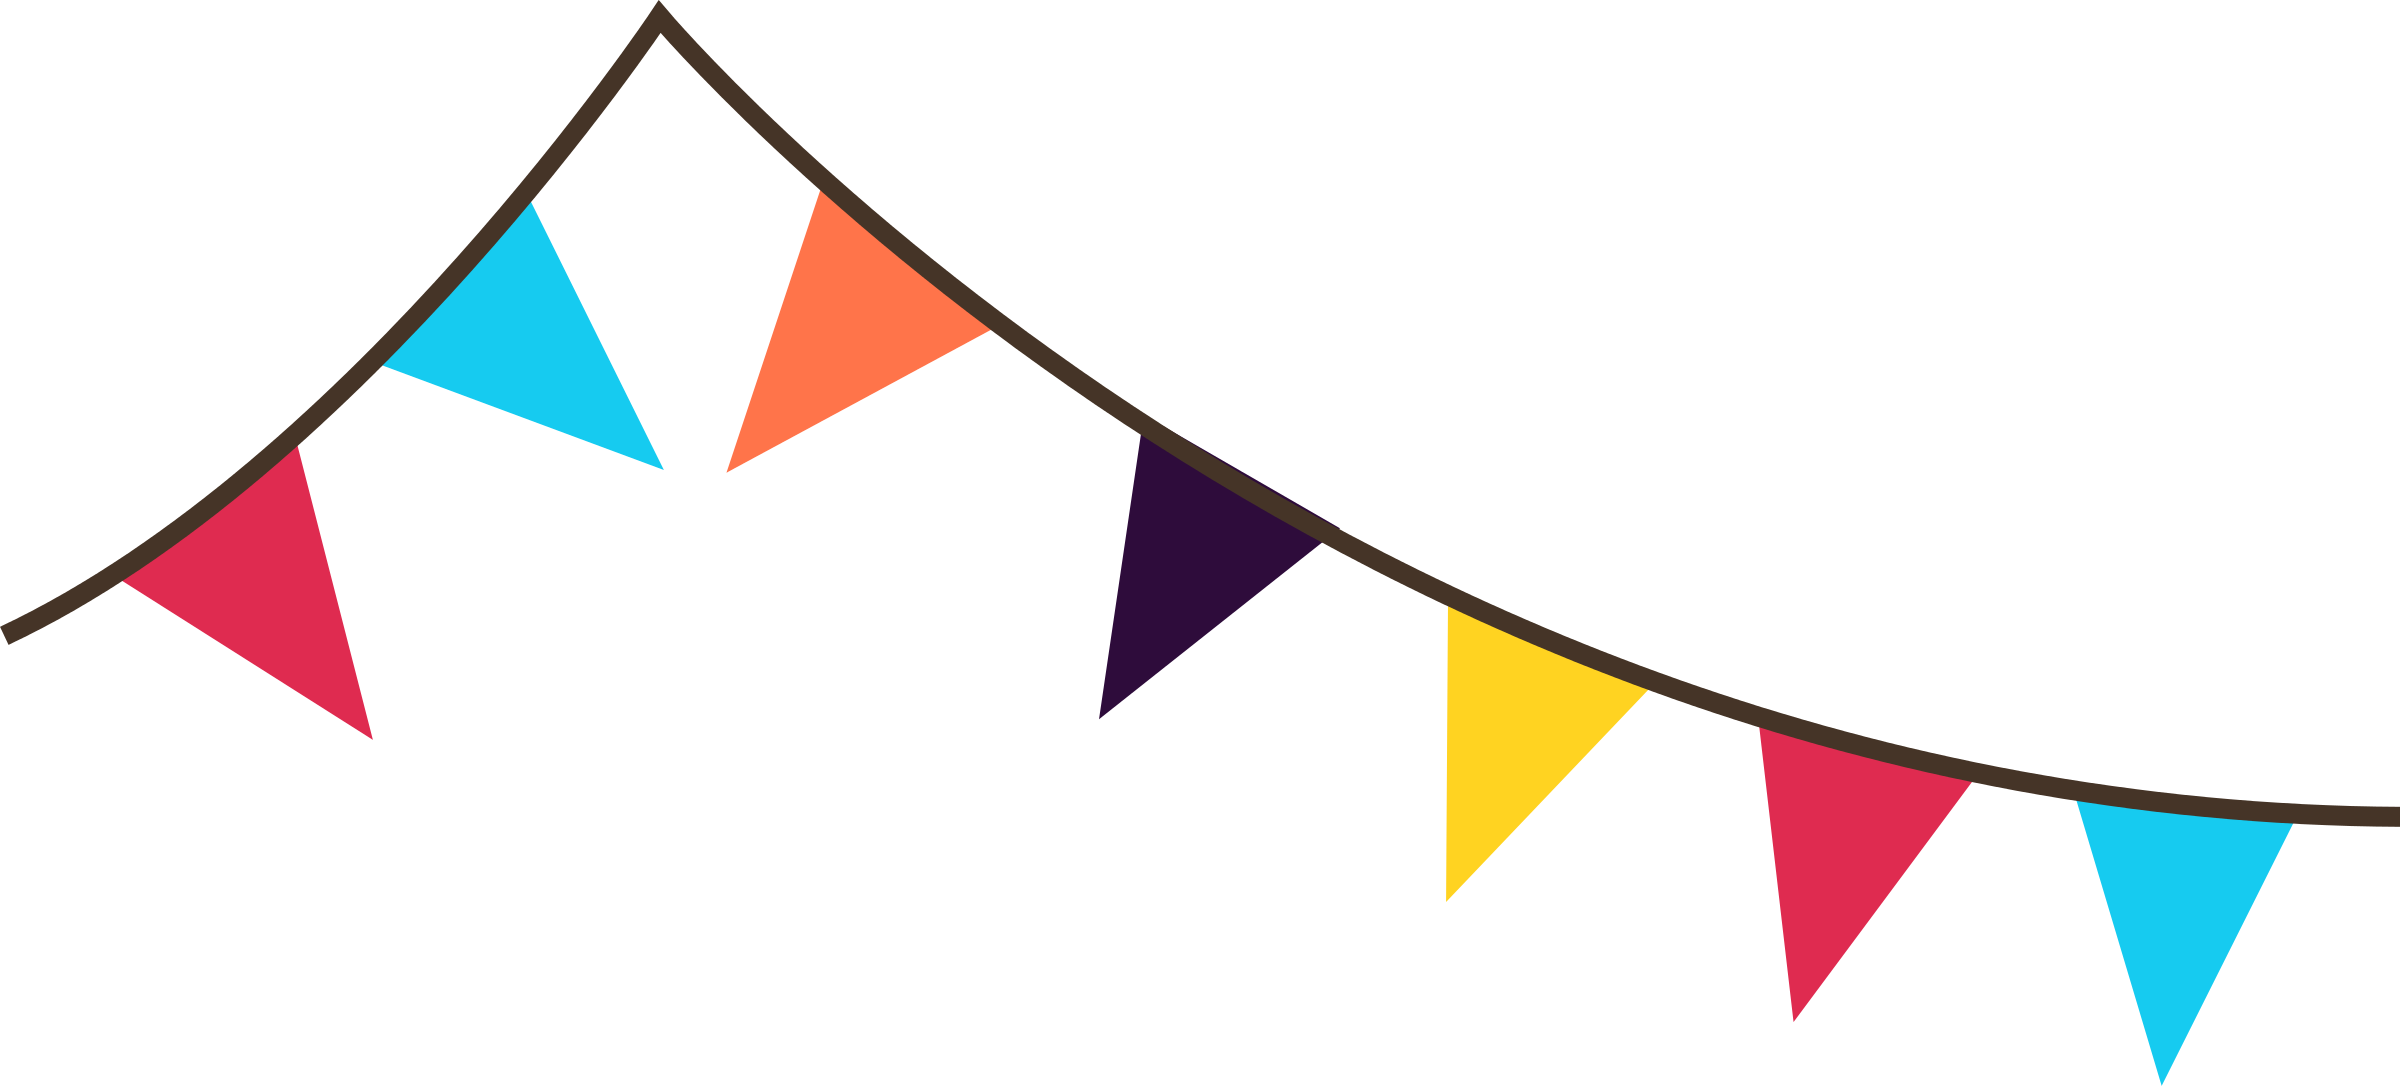 Triangle flag banner clip art pluspng - PNG Triangle Flag